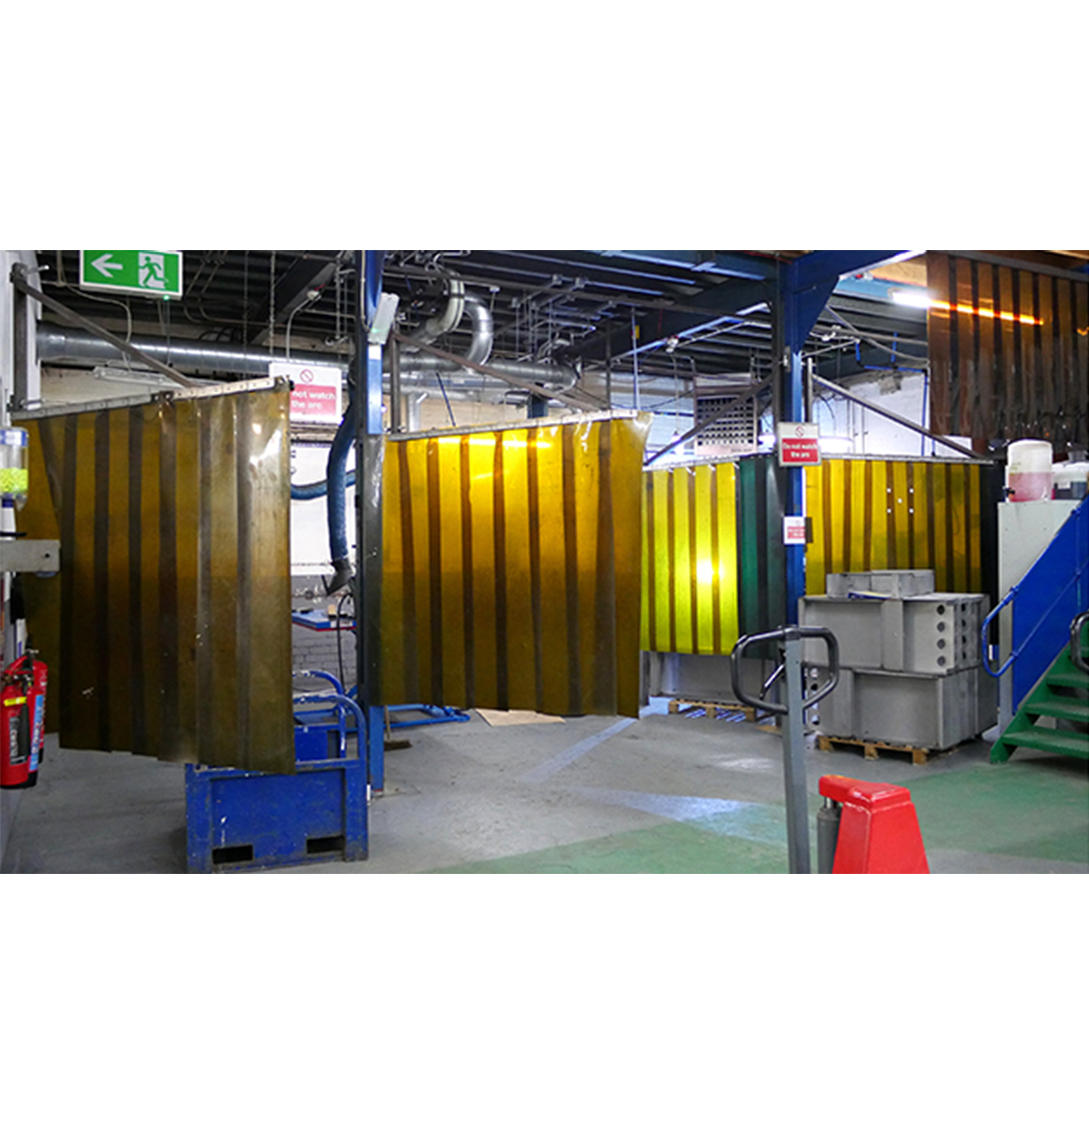 Photograph of Ritherdon welding booths